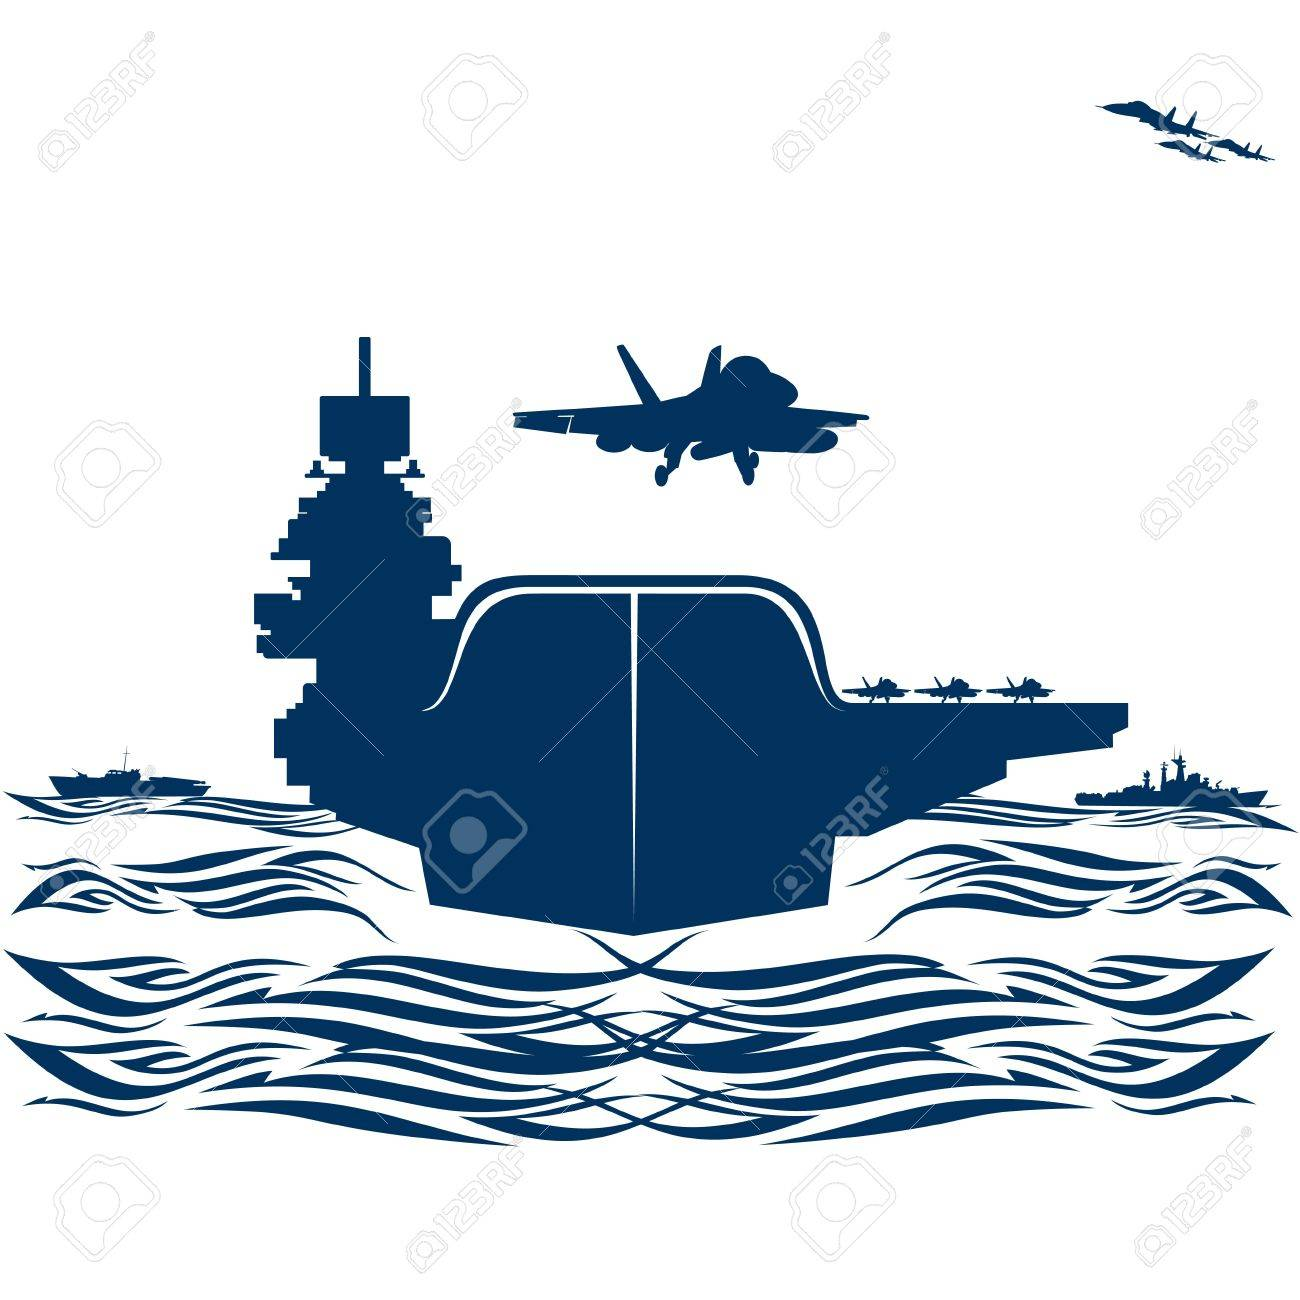 navy military aircraft taking off from an aircraft carrier rh 123rf com us aircraft carrier clipart